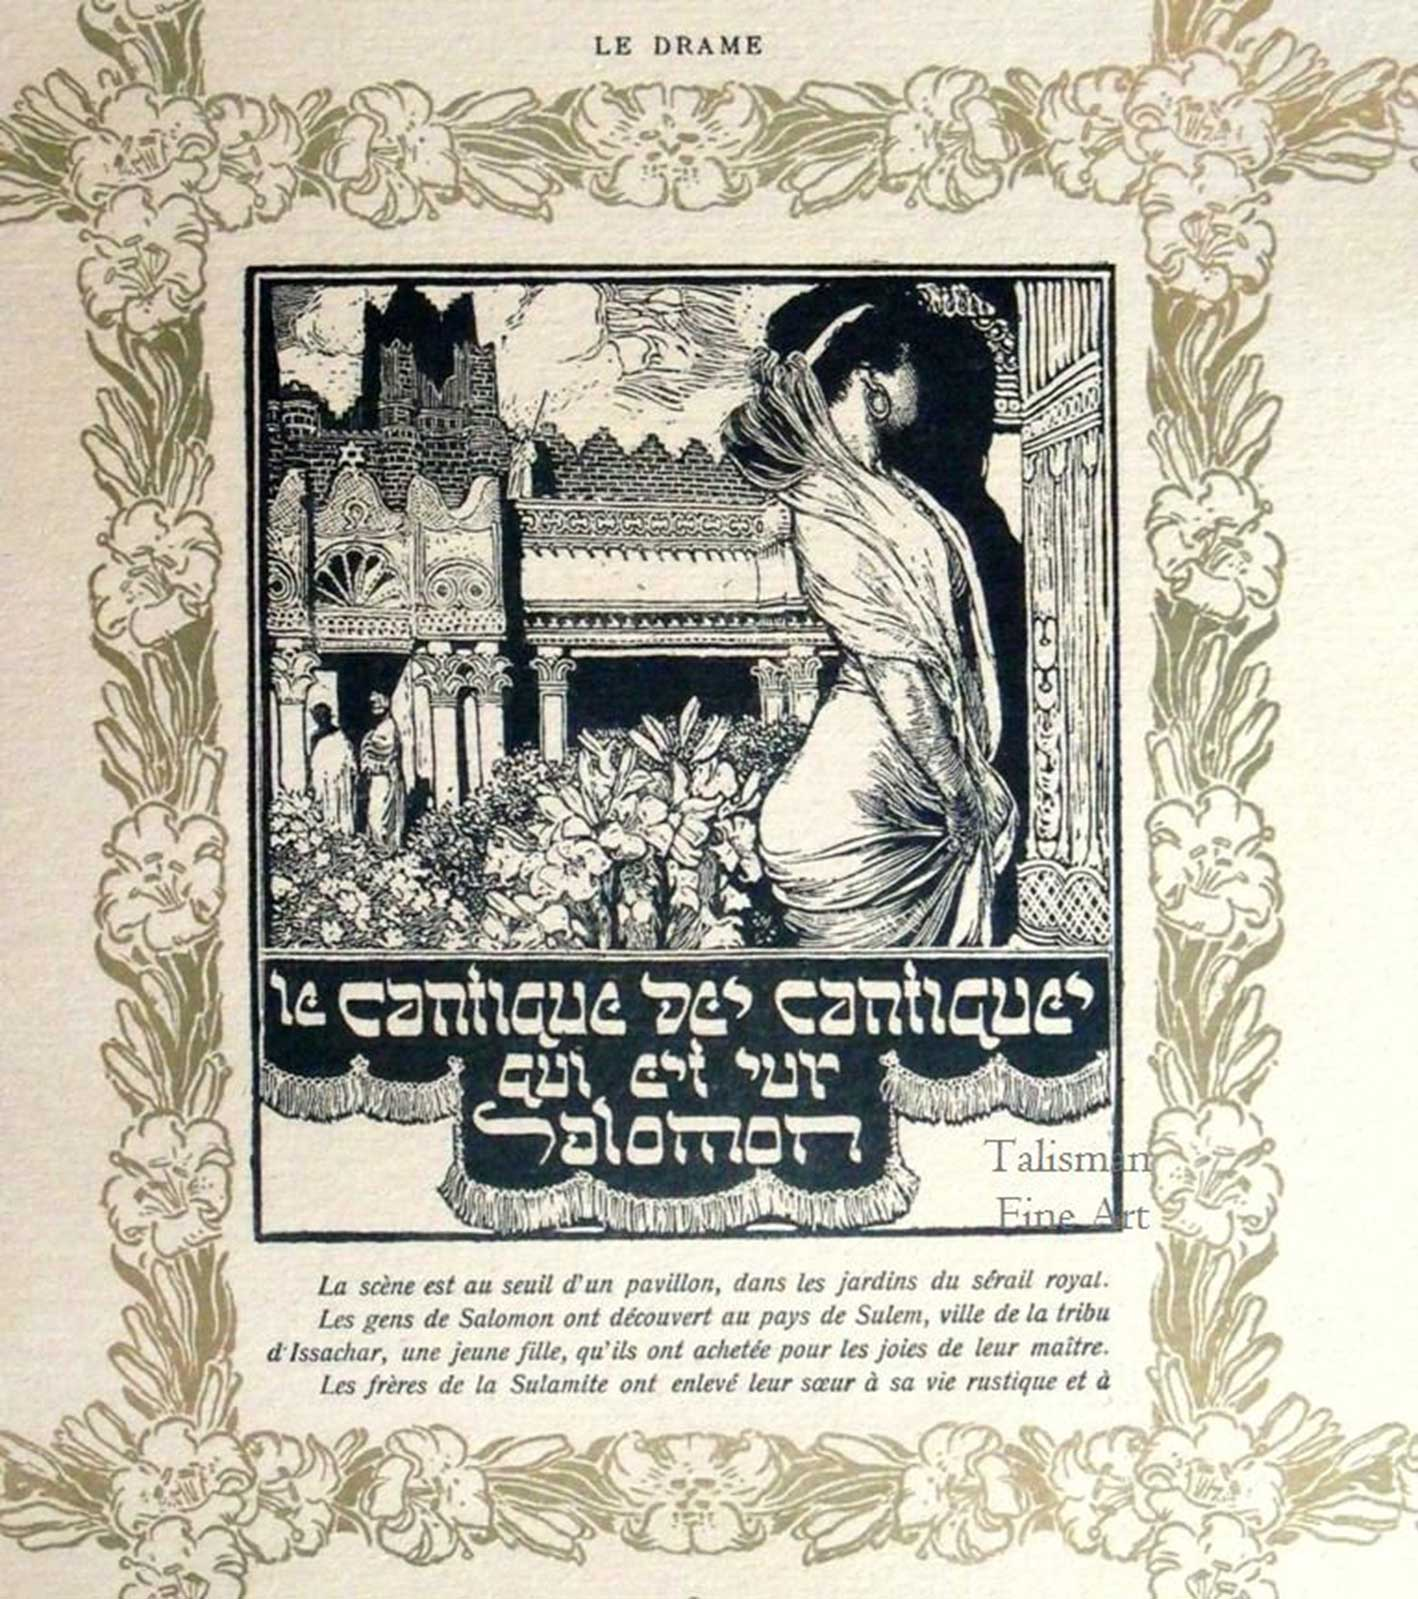 Talusman Fine Art Frantisek Kupka, Wood Engraving No 5 to illustrate 'Le Cantique des Cantiques Qui Est Sur Salomon'.